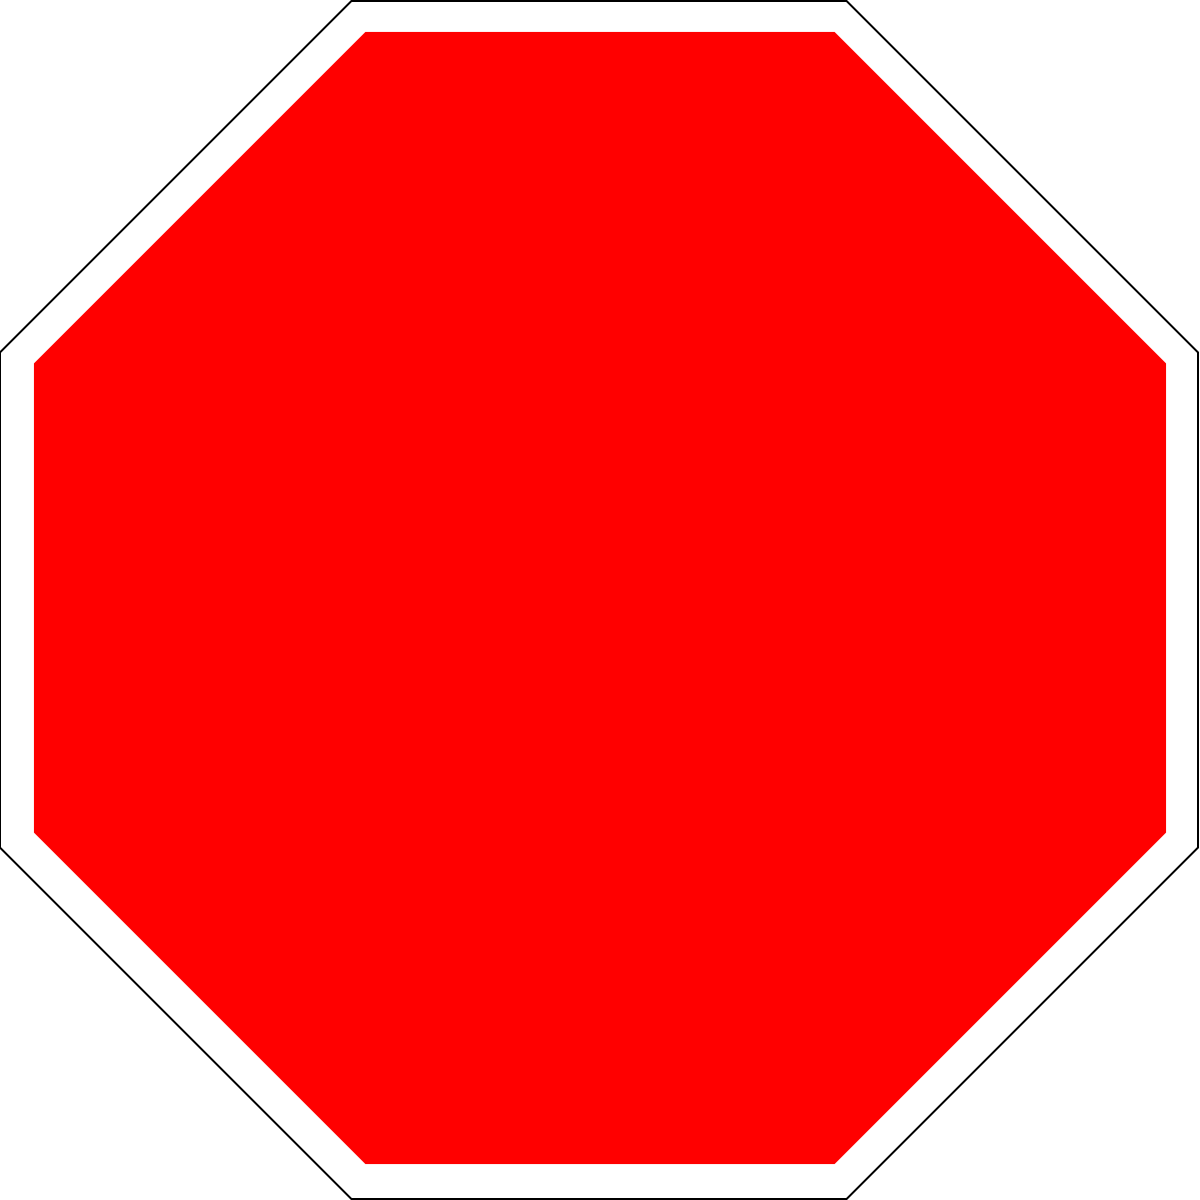 Stop sign clip art holding. Analyzing symbols wikiversity